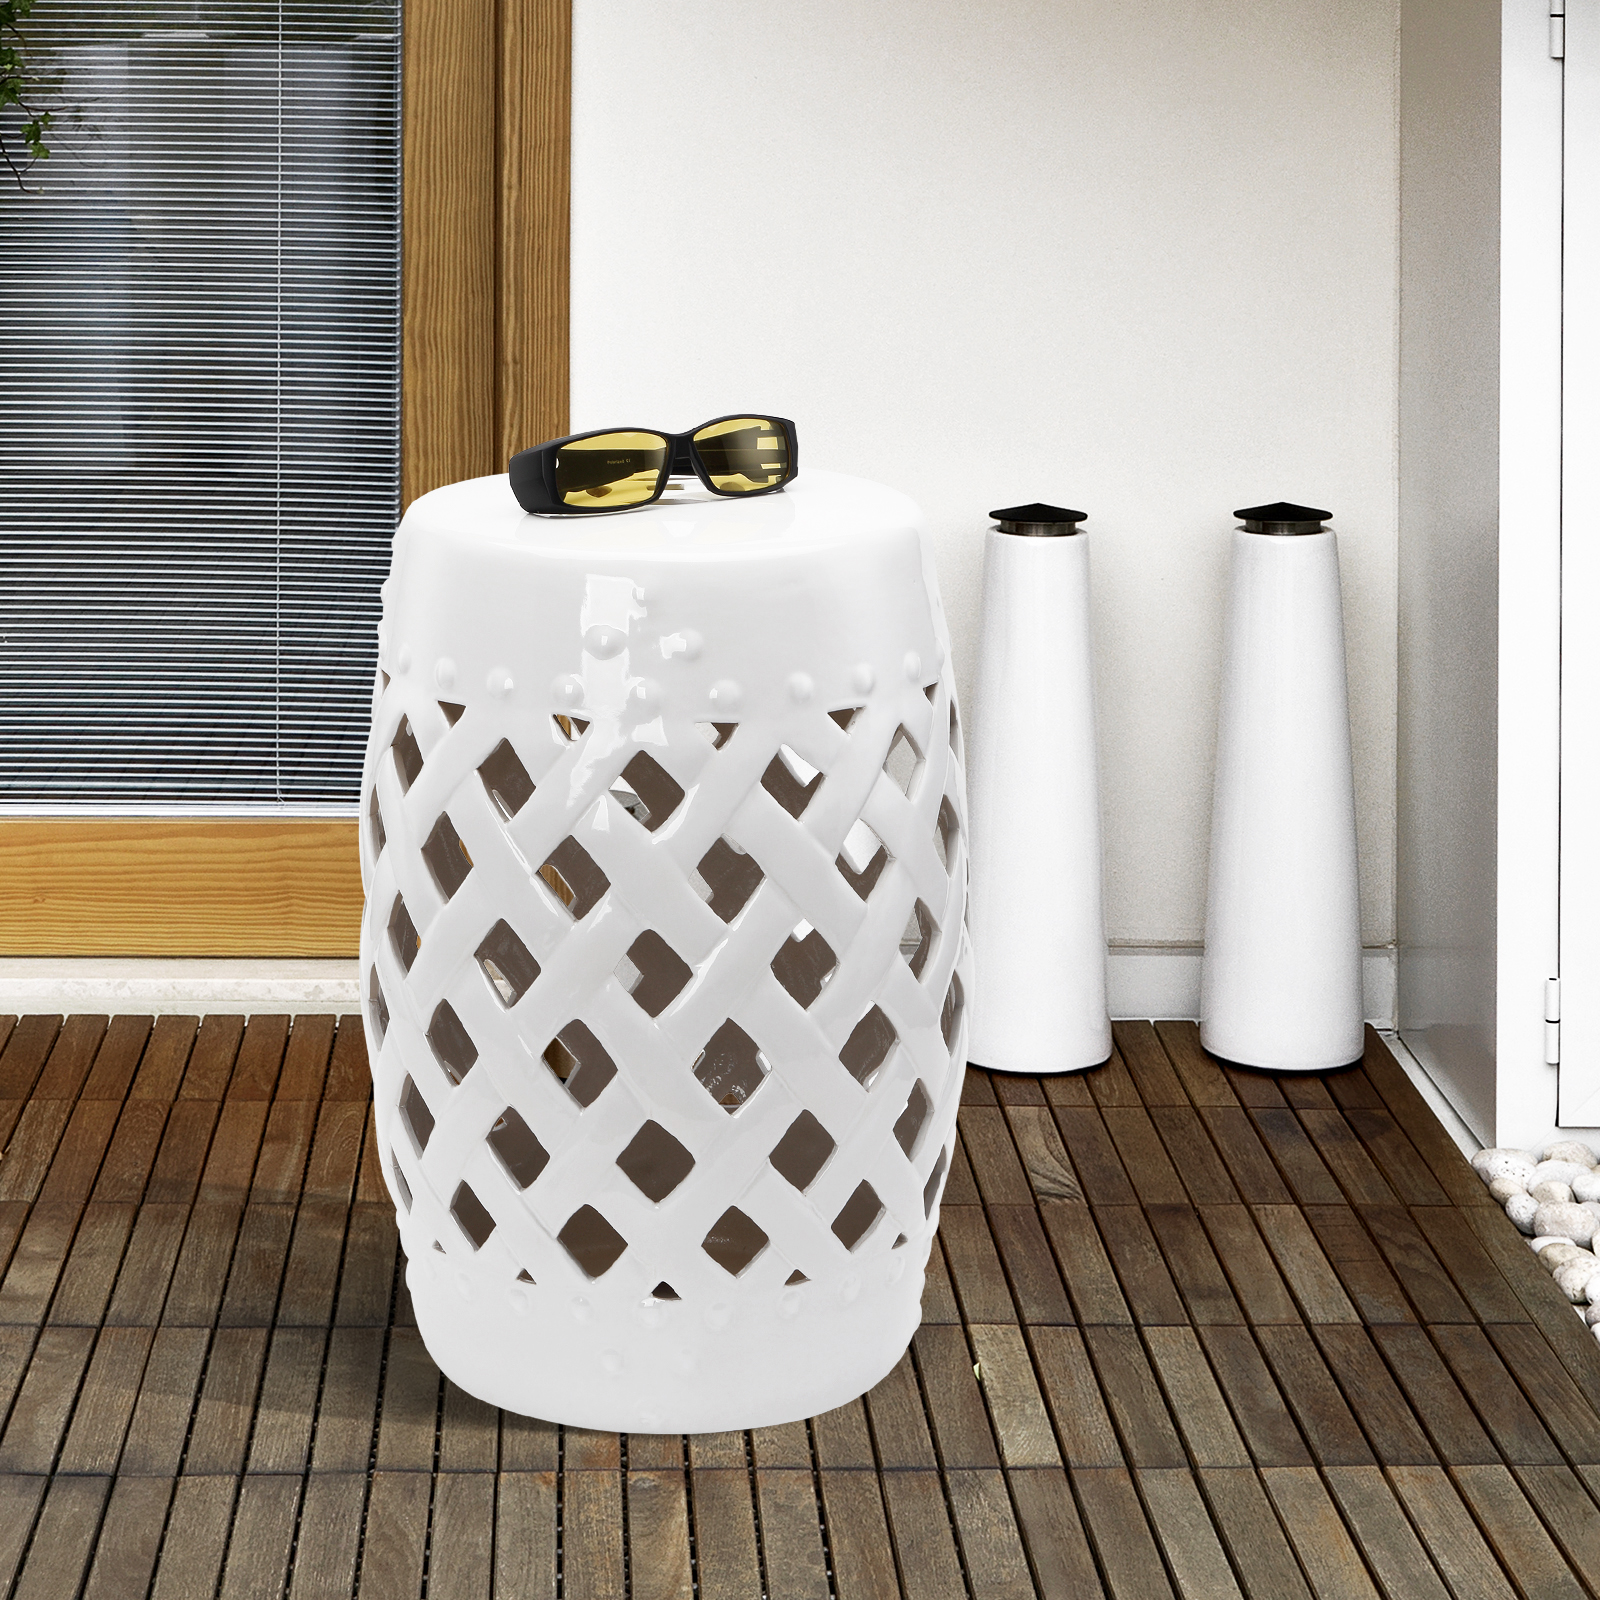 Astonishing Details About Outsunny Modern Ceramic Lattice Garden Stool Accent Table Decorative White Alphanode Cool Chair Designs And Ideas Alphanodeonline